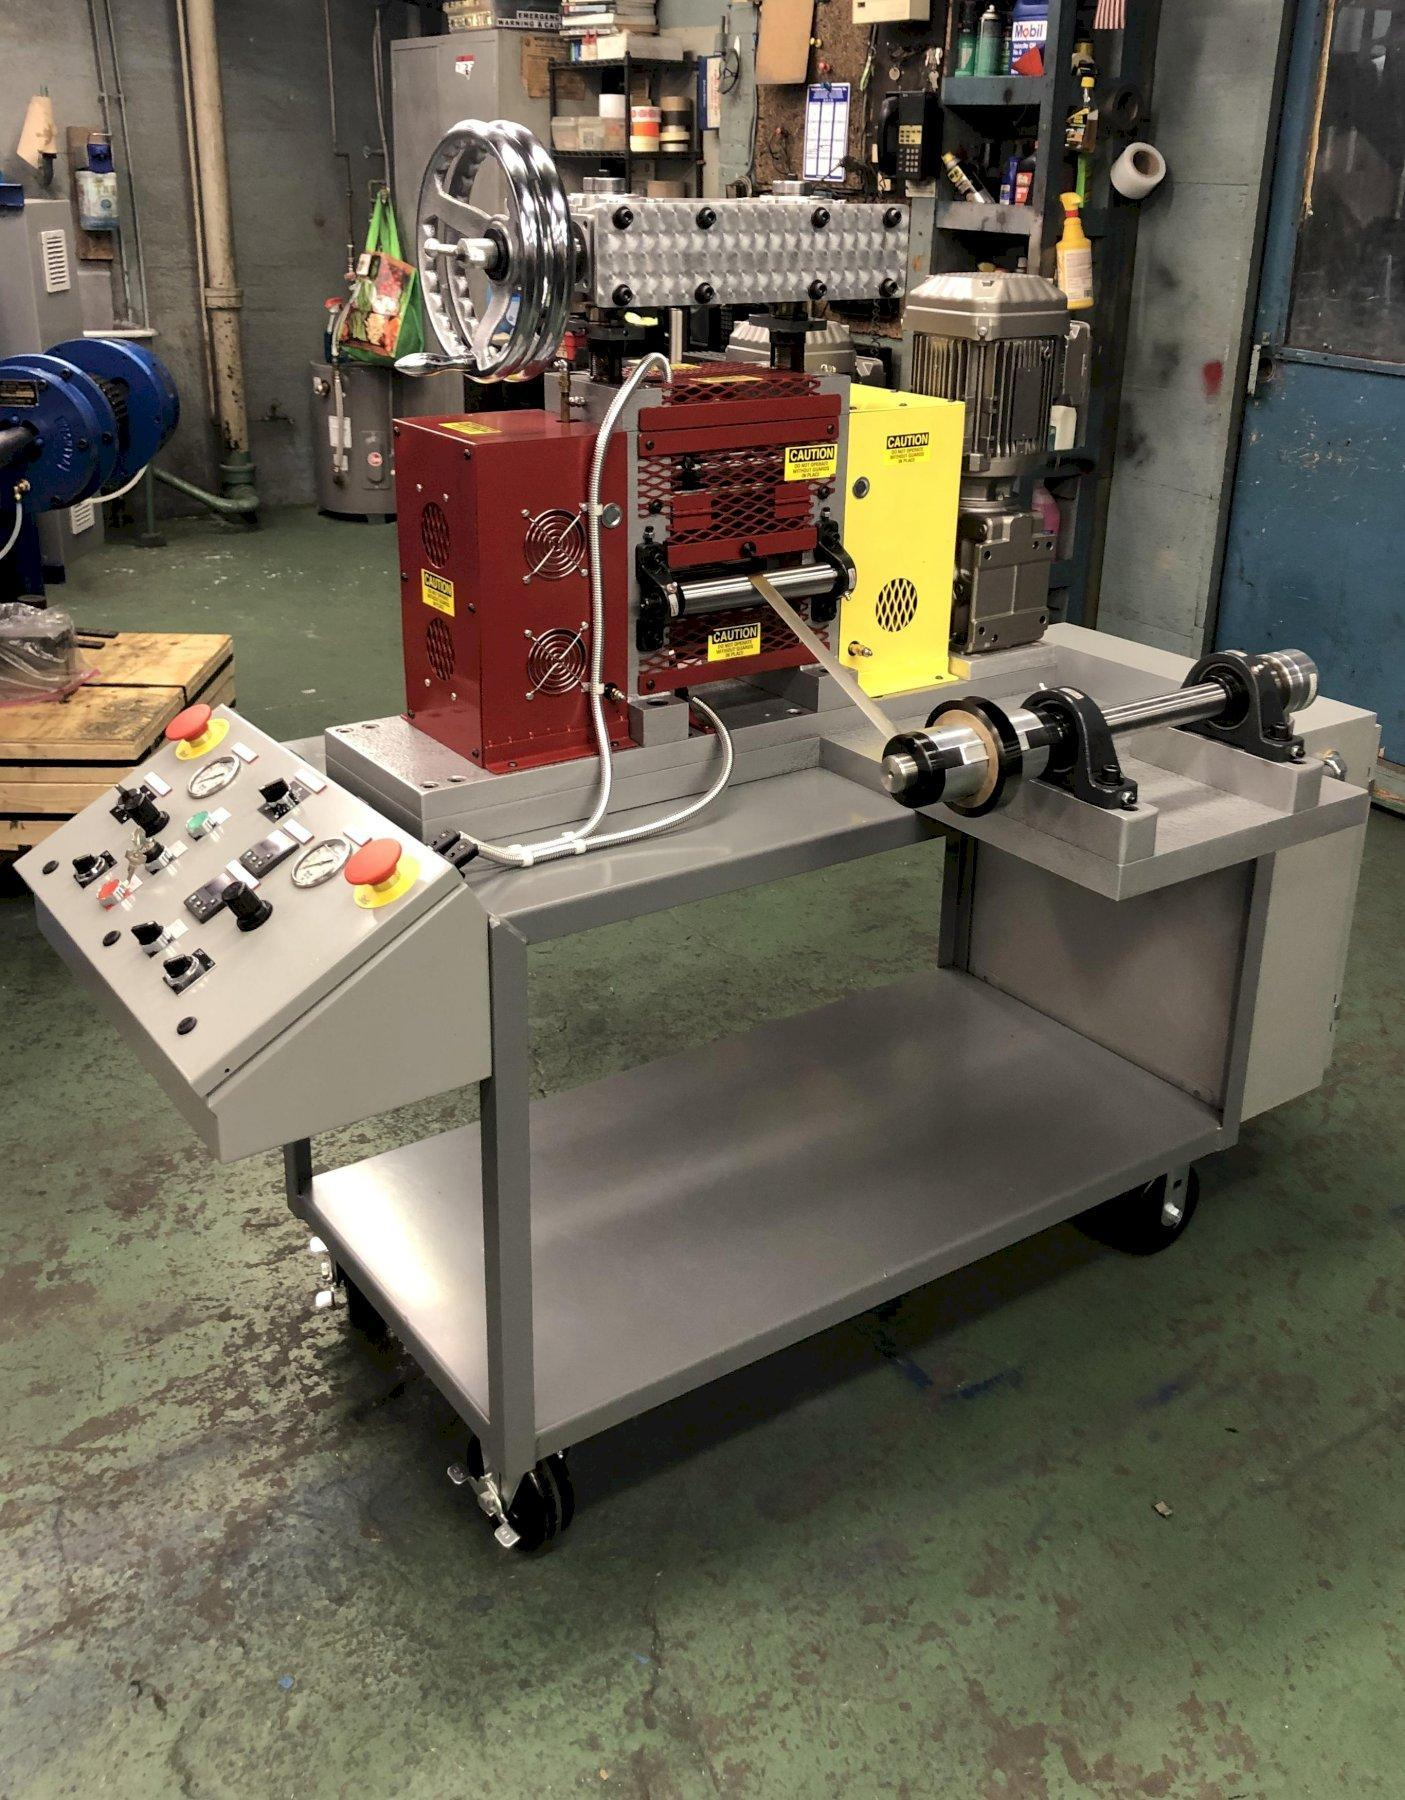 """IRM MODEL 4060H 4"""" X 6"""" 4HI HOT LAB ROLLING MILL - INCLUDES PRE-HEATED ROLLS, DUAL SIDEWHEEL SCREWDOWN ASSEMBLY, AND PAYOFF AND RECOILER SYSTEM"""